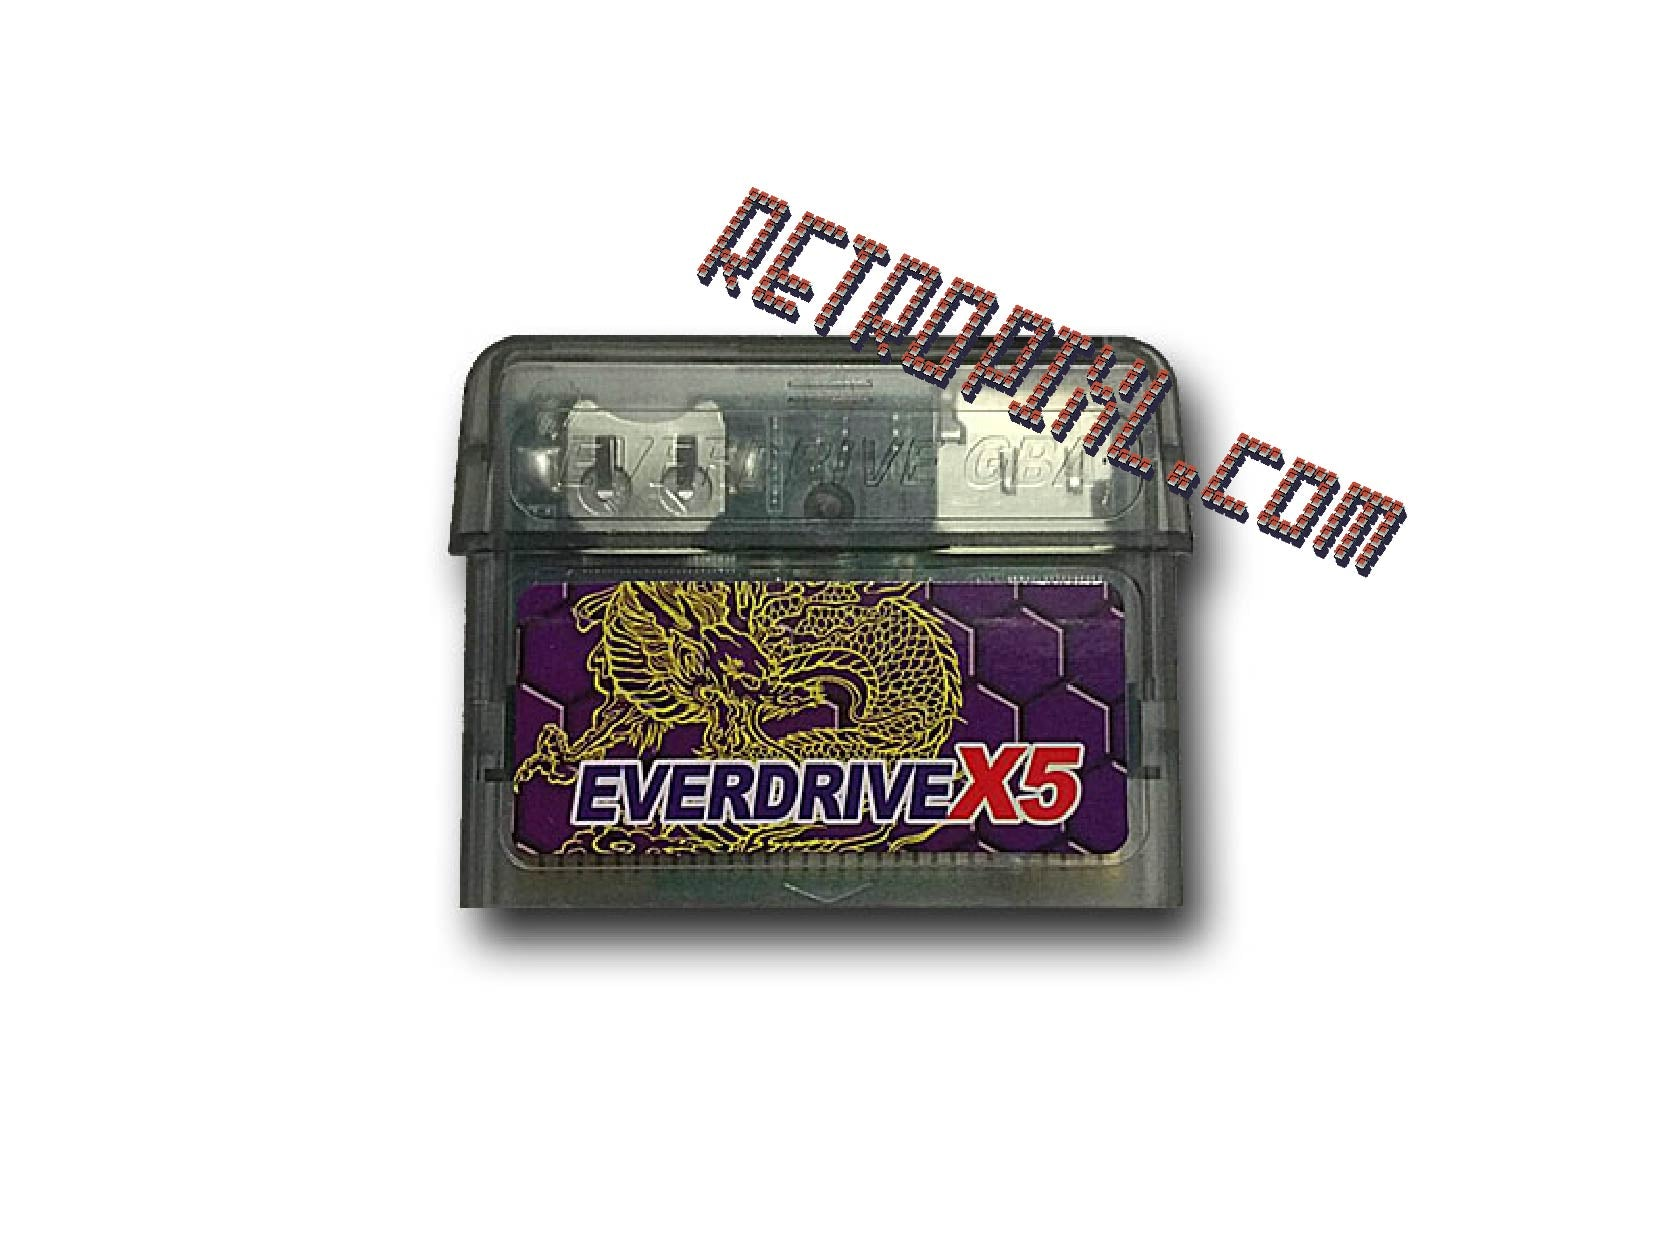 Retropixl, retrogaming, nintendo game boy advance, nintendo everdrive, , game boy advance everdrive, evedrive, everdrive x5, nintendo everdrive